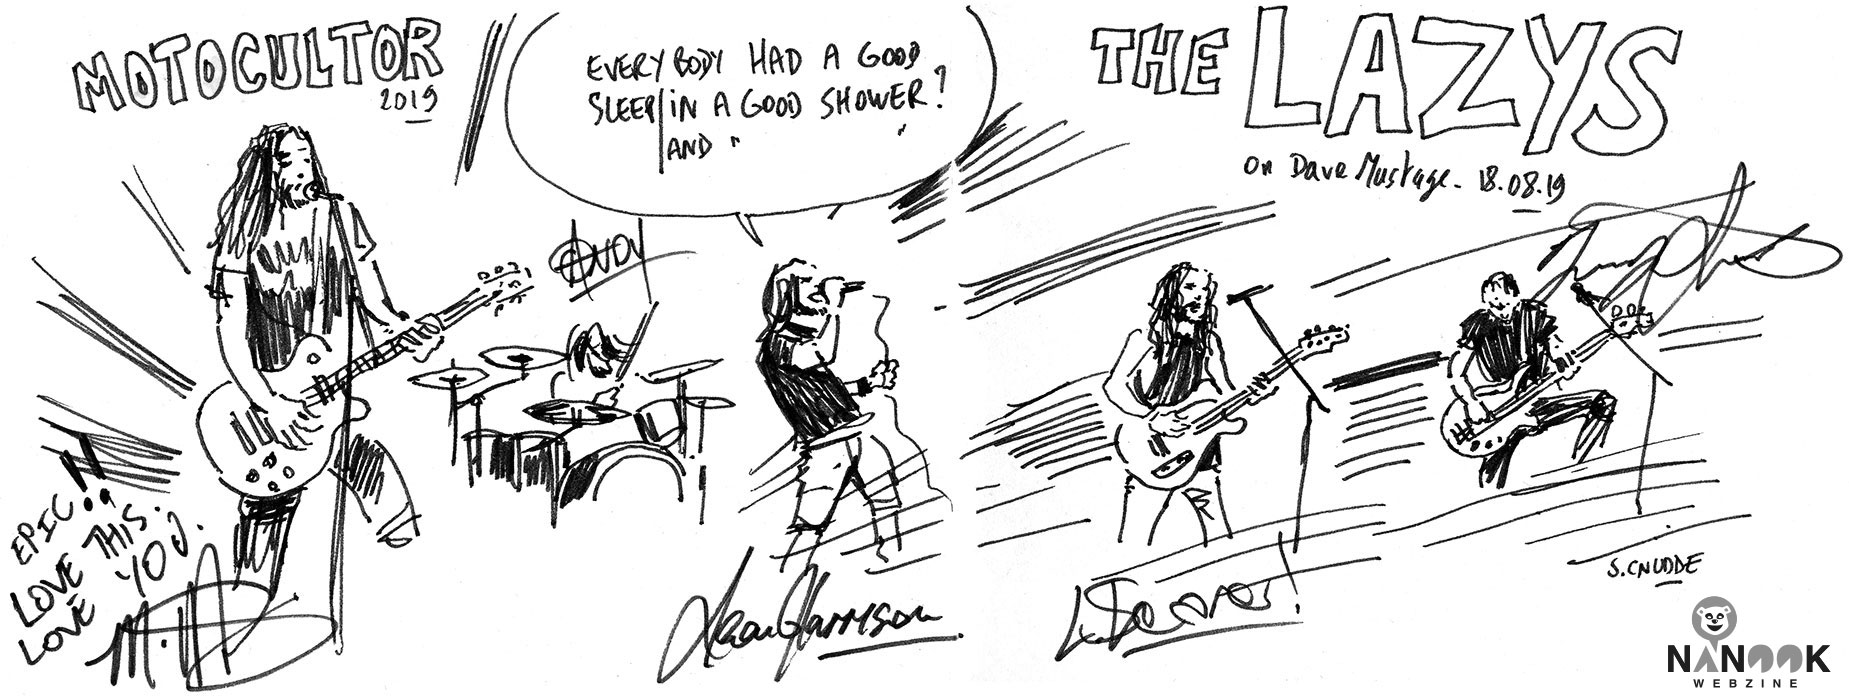 The_Lazys-festival-concert-motocultor-2019-nanook-webzine-report-article-sylvain-cnudde-dessins-direct-live-croquis